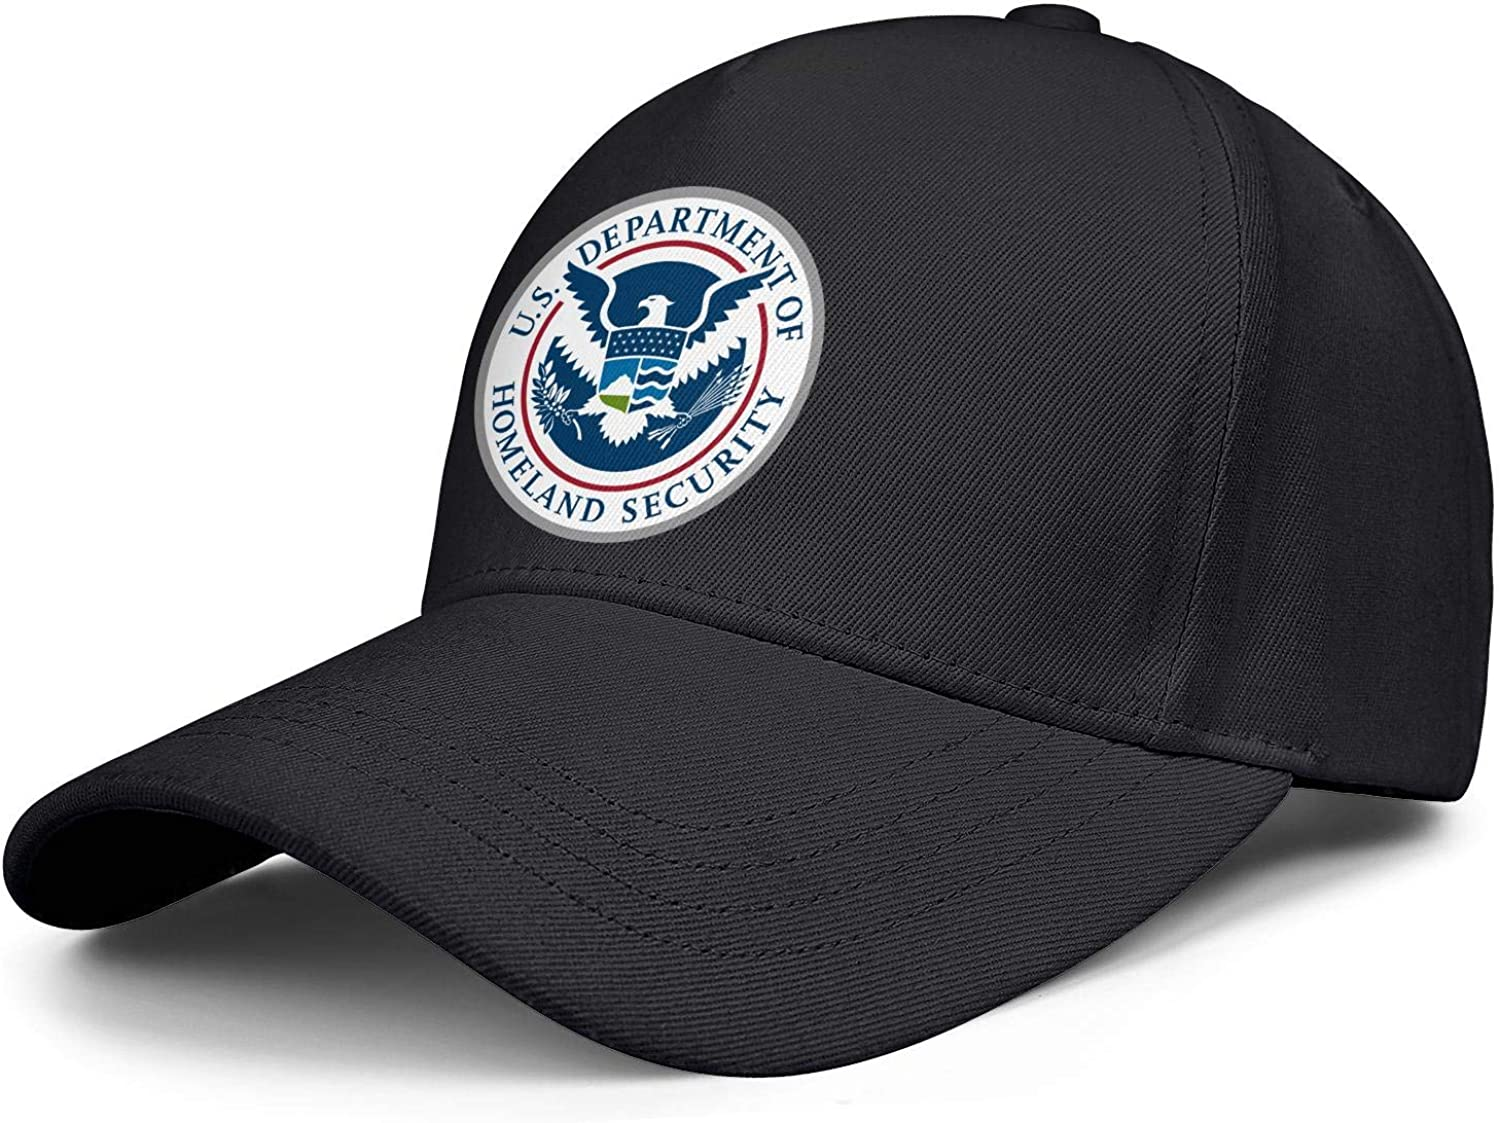 Low Profile Mens Baseball Caps United States Navy Reserve Trucker Hat for Men One Size Dad Hat for Women